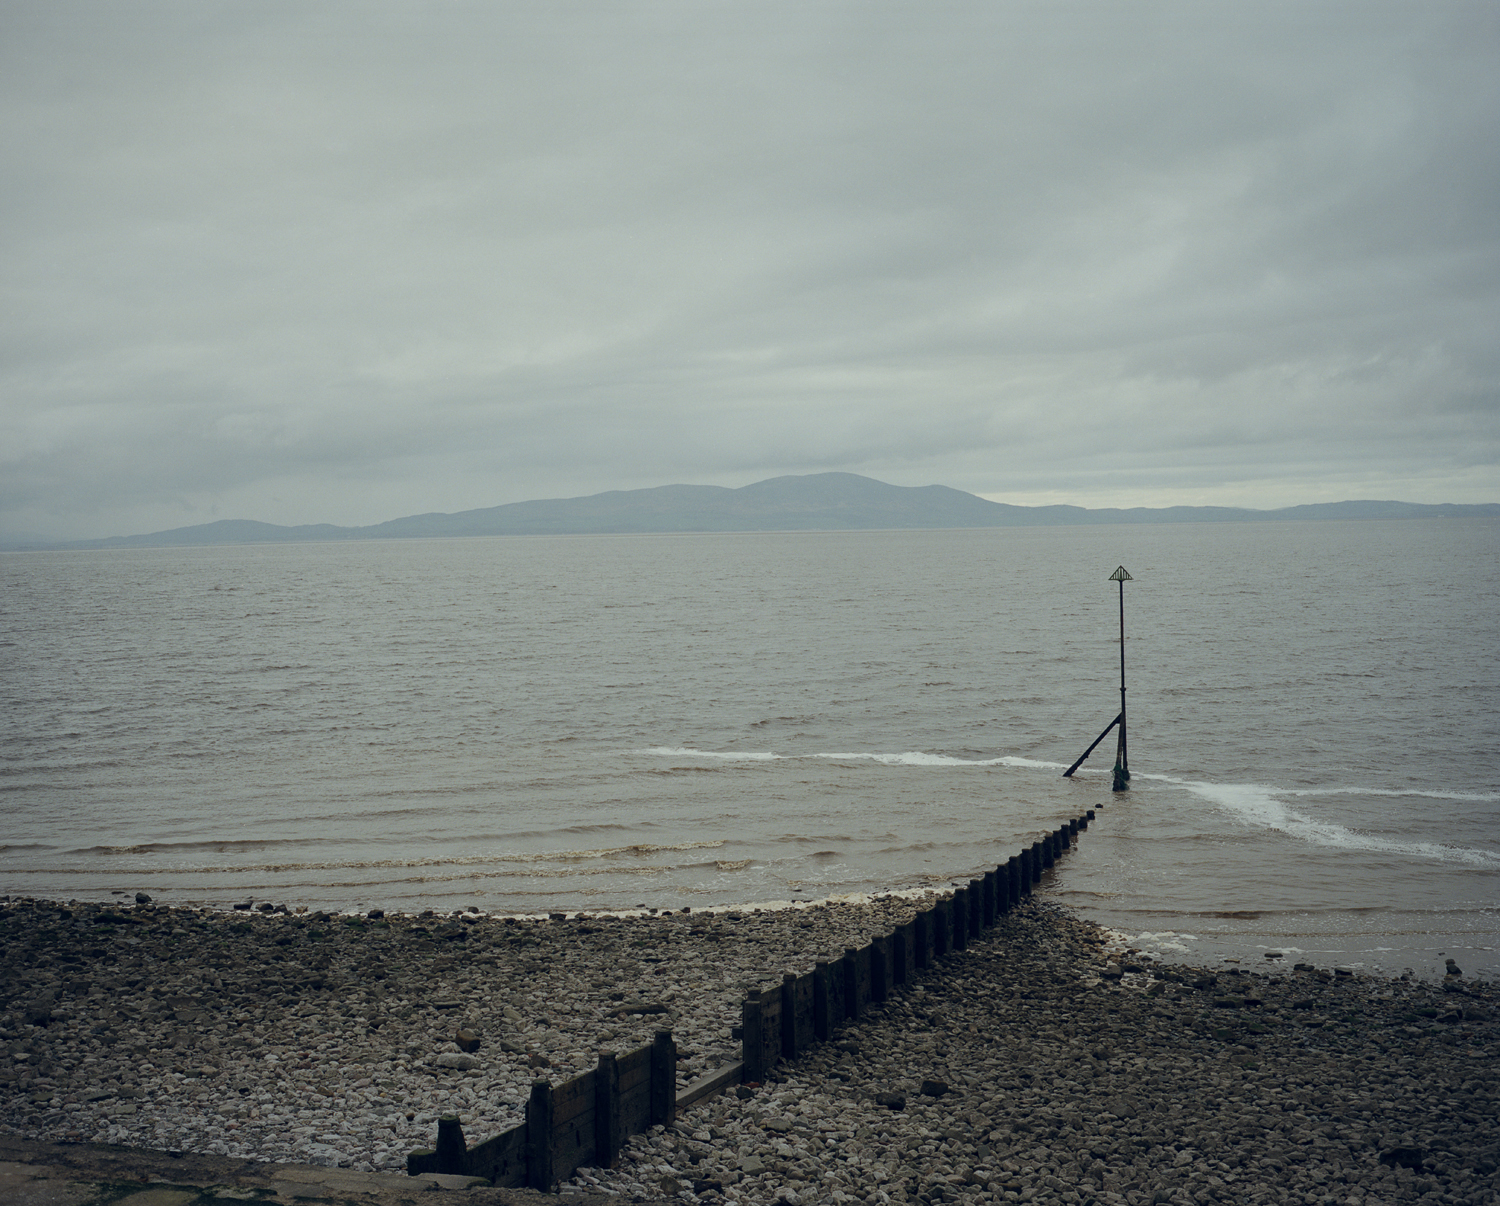 Looking at the hills of Dumfriesshire in Scotland from Cumbria, England, across the Solway Firth.